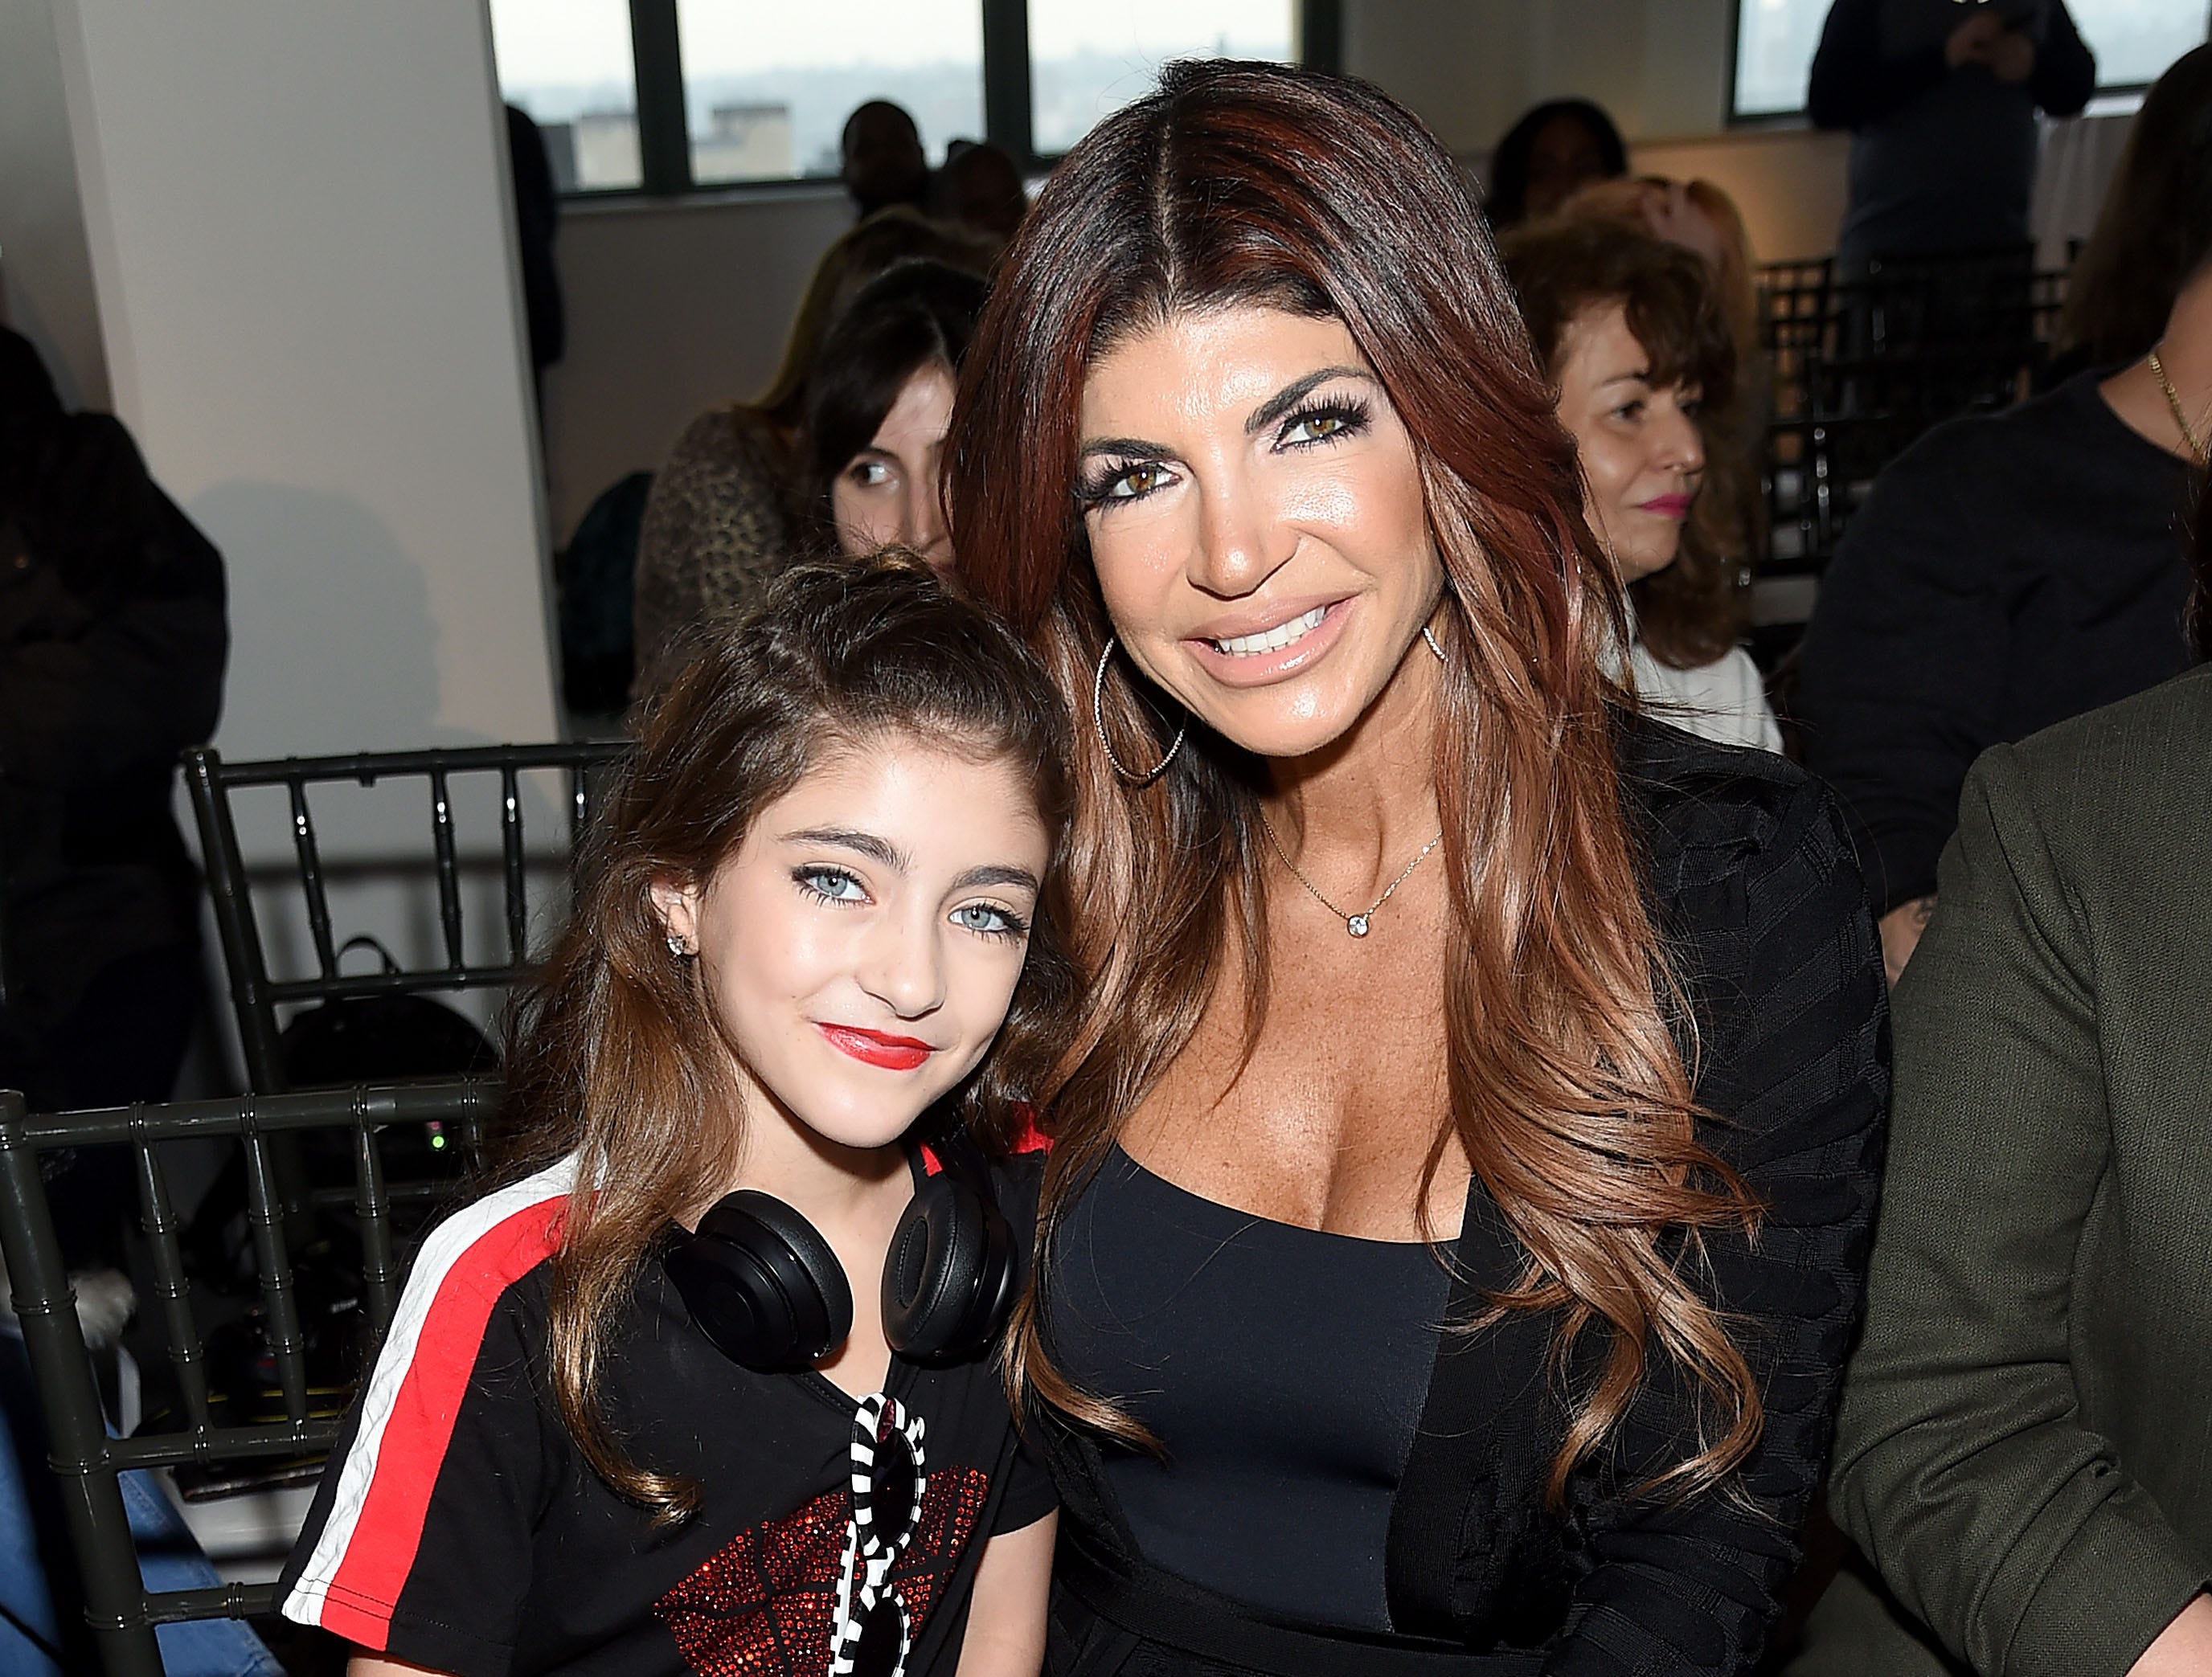 NEW YORK, NEW YORK - FEBRUARY 08: Audriana Giudice and Teresa Giudice attend the Cosmopolitan NYFW fashion show during New York Fashion Week at Tribeca 360 on February 08, 2019 in New York City. (Photo by Jamie McCarthy/Getty Images) ORG XMIT: 775293464 ORIG FILE ID: 1128283487